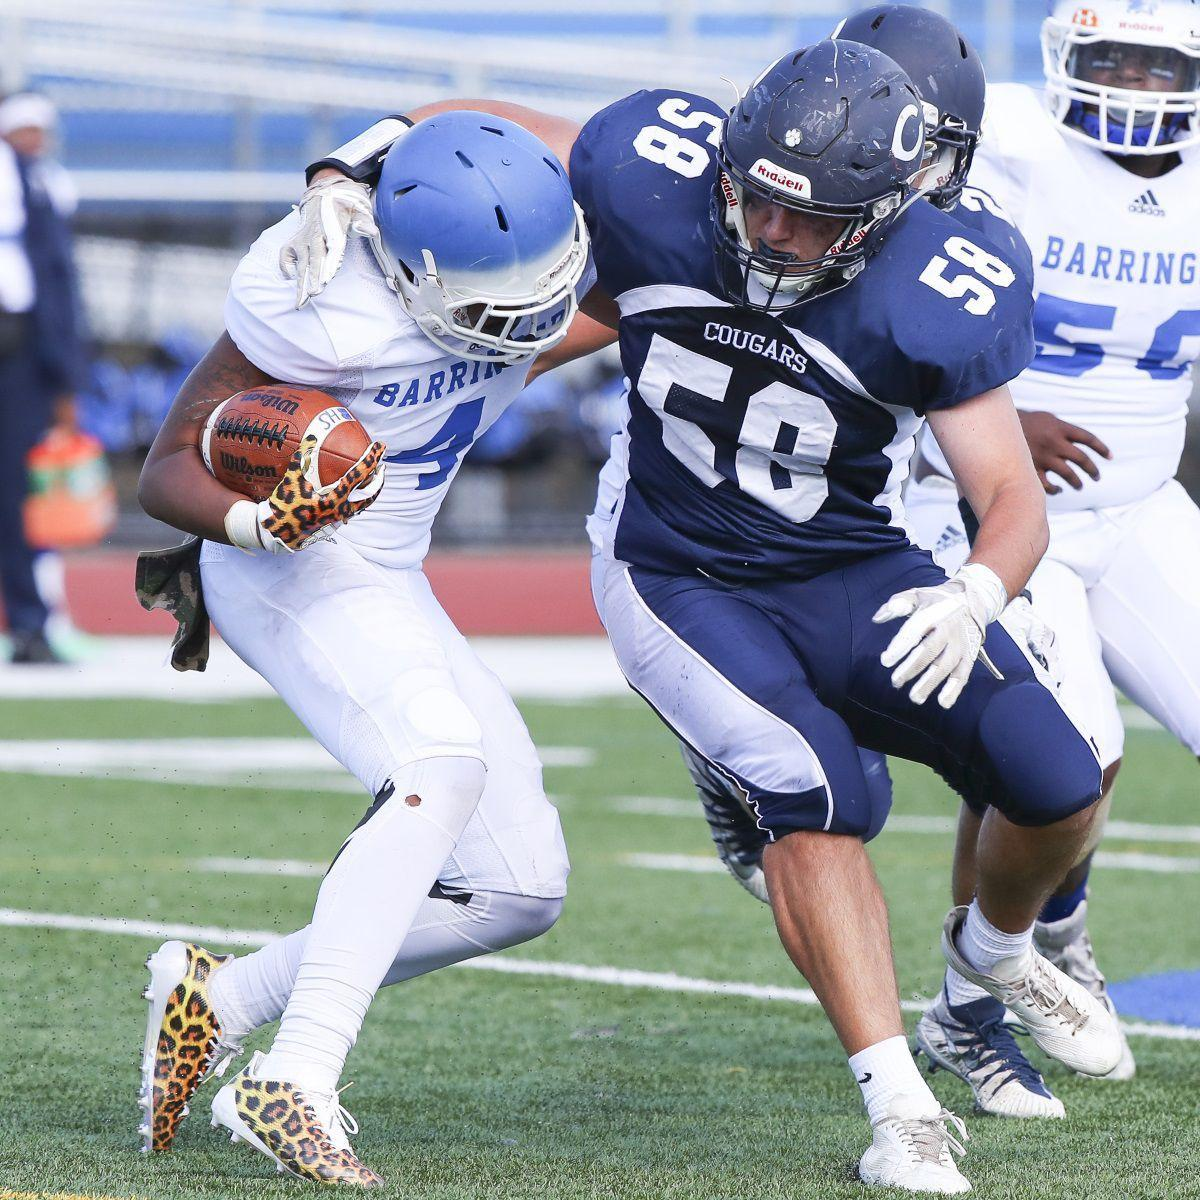 Language In 45 And 47 Stella Street: Chatham Falls To Barringer In Season Opener